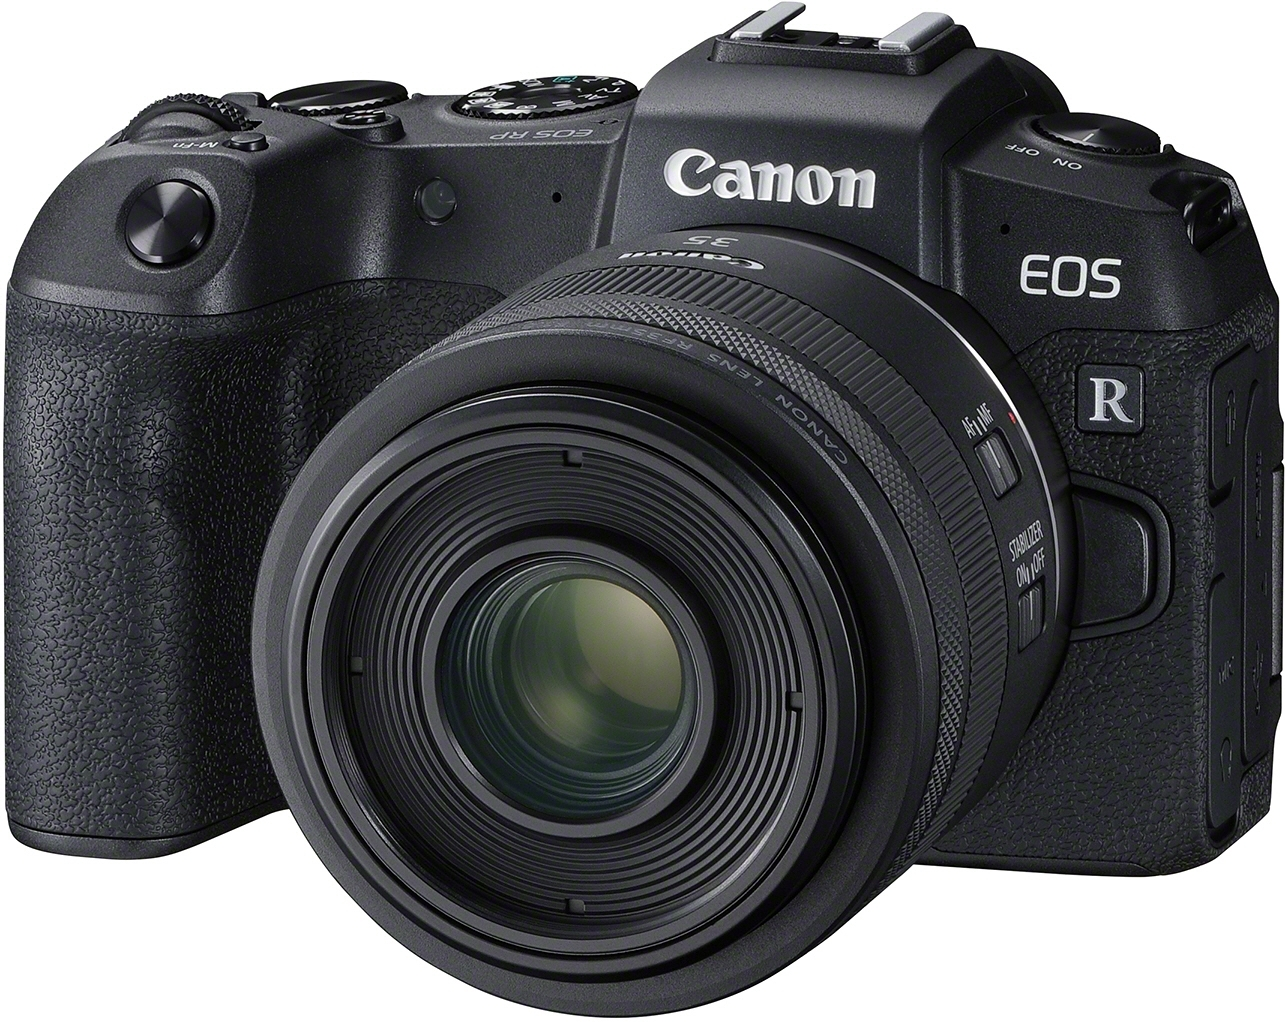 The EOS RP, a camera that has impressed me so much I am considering this as a parallel system to my Canon 5D4